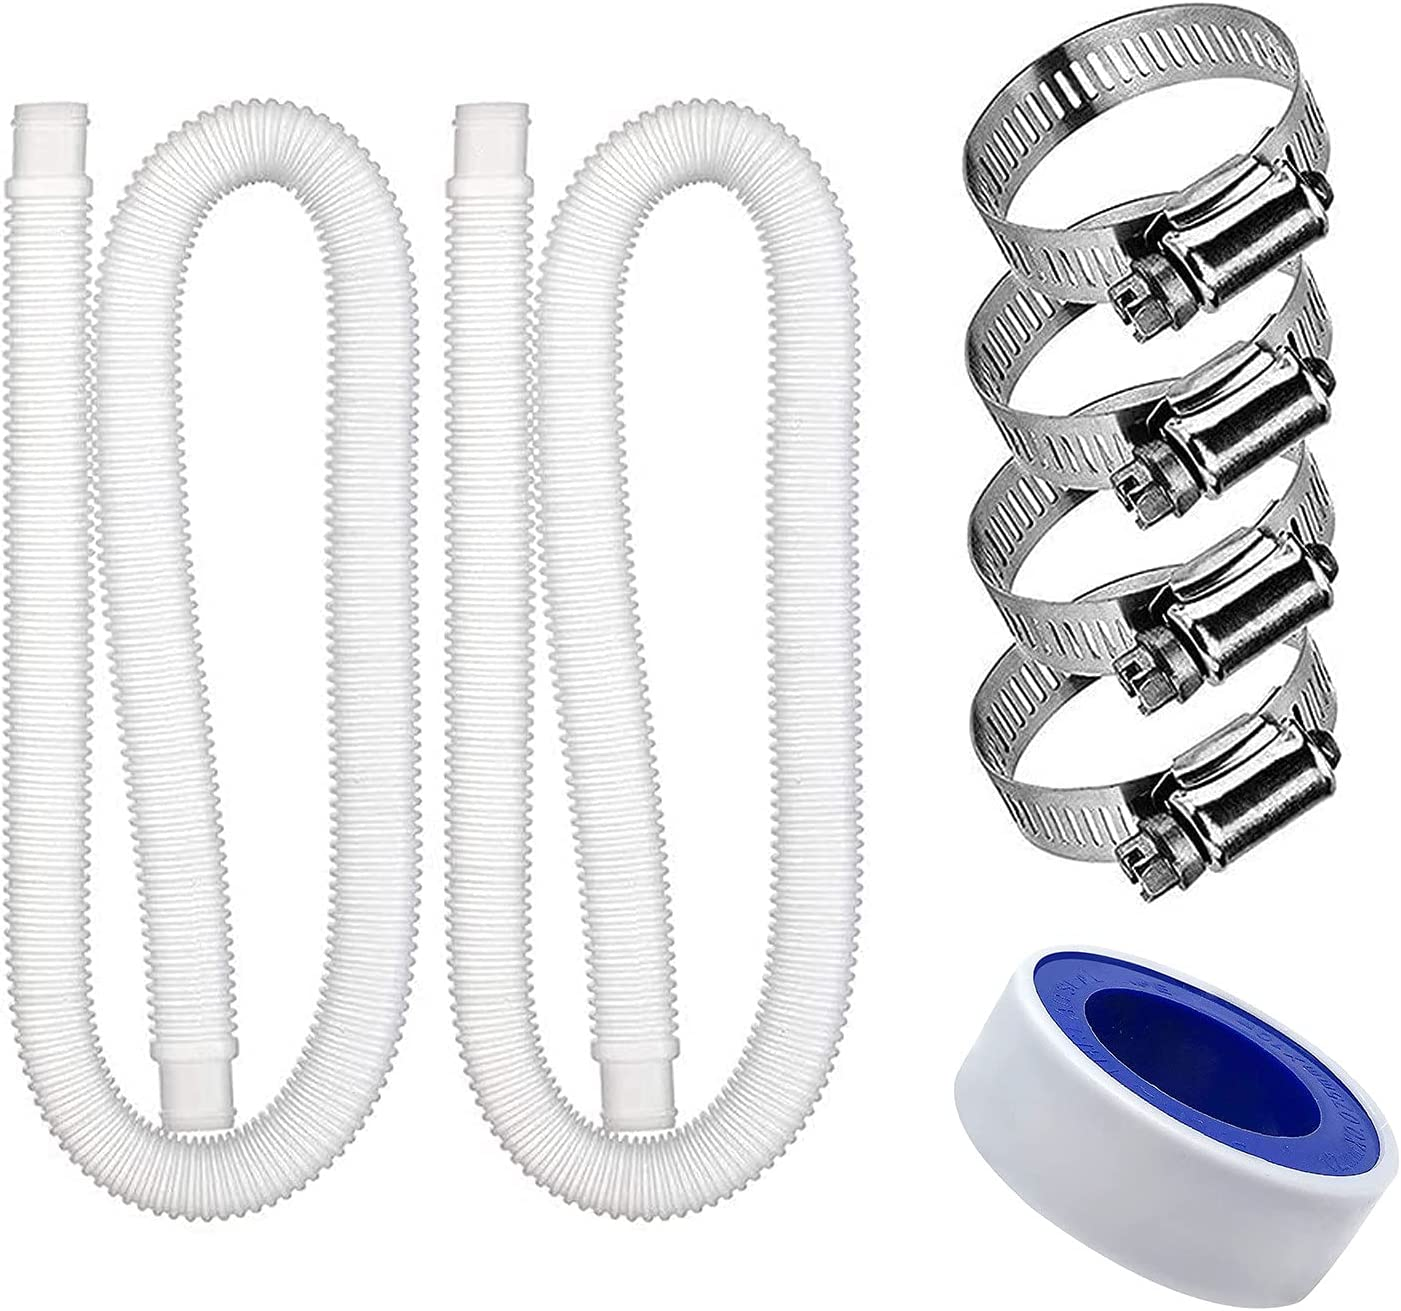 RYDCOT Swimming Pool Replacement Max 44% OFF Hose for Tucson Mall Abov